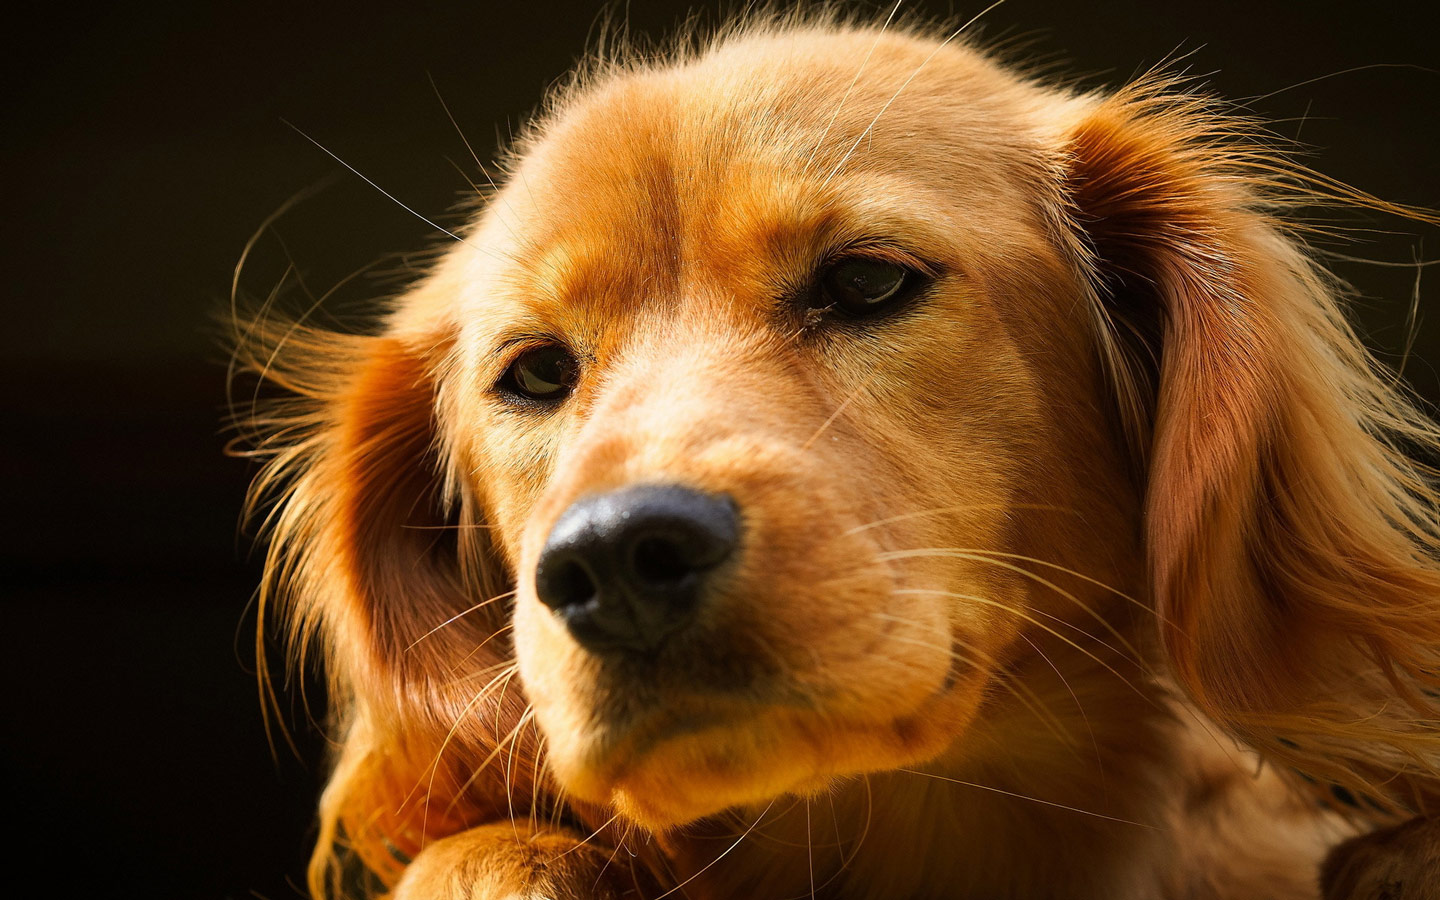 Very Cute Dog Free Desktop Wallpapers Wallpaper Pictures to pin on ...